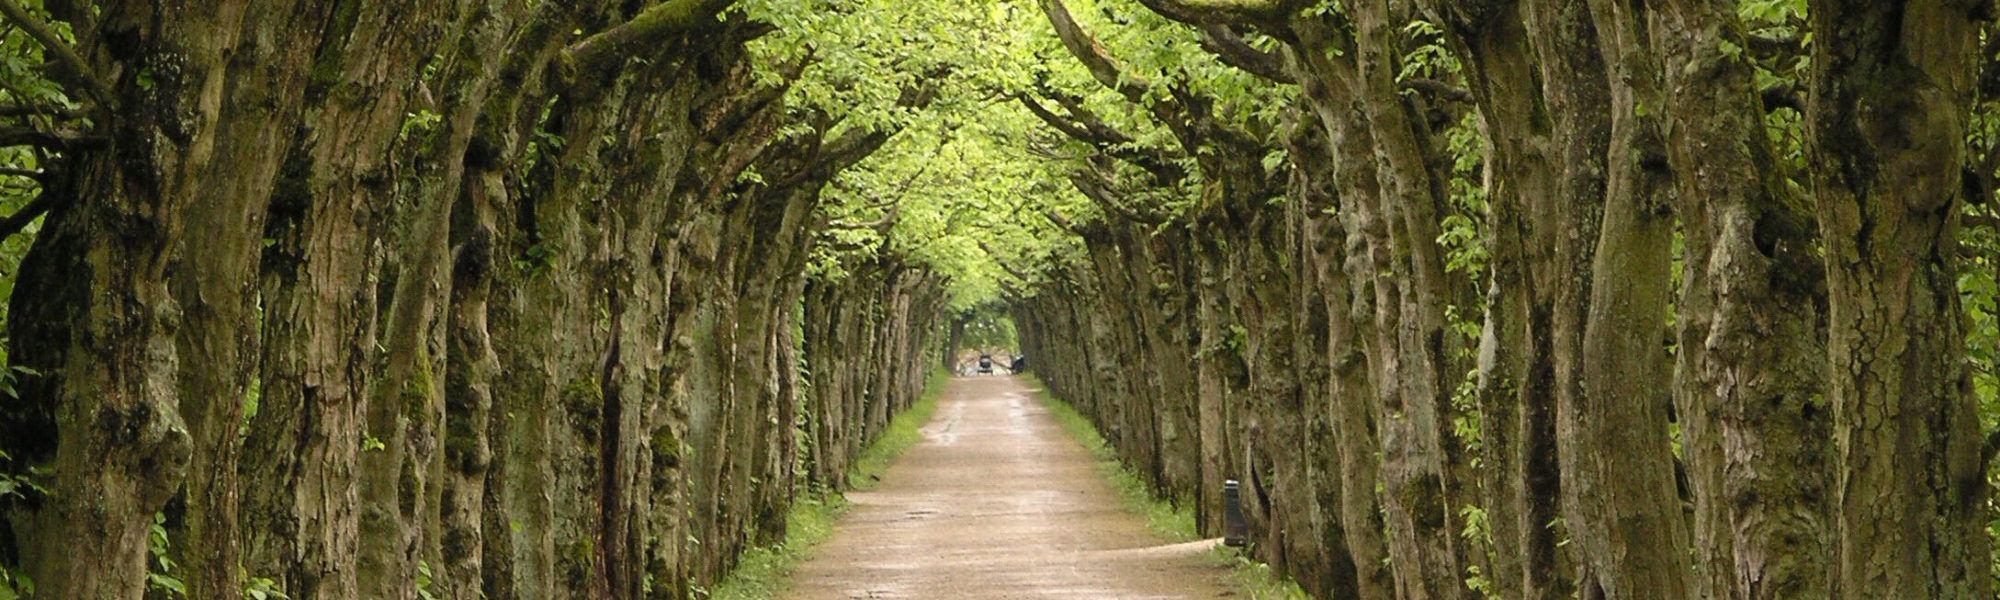 A long and winding road between a row of trees